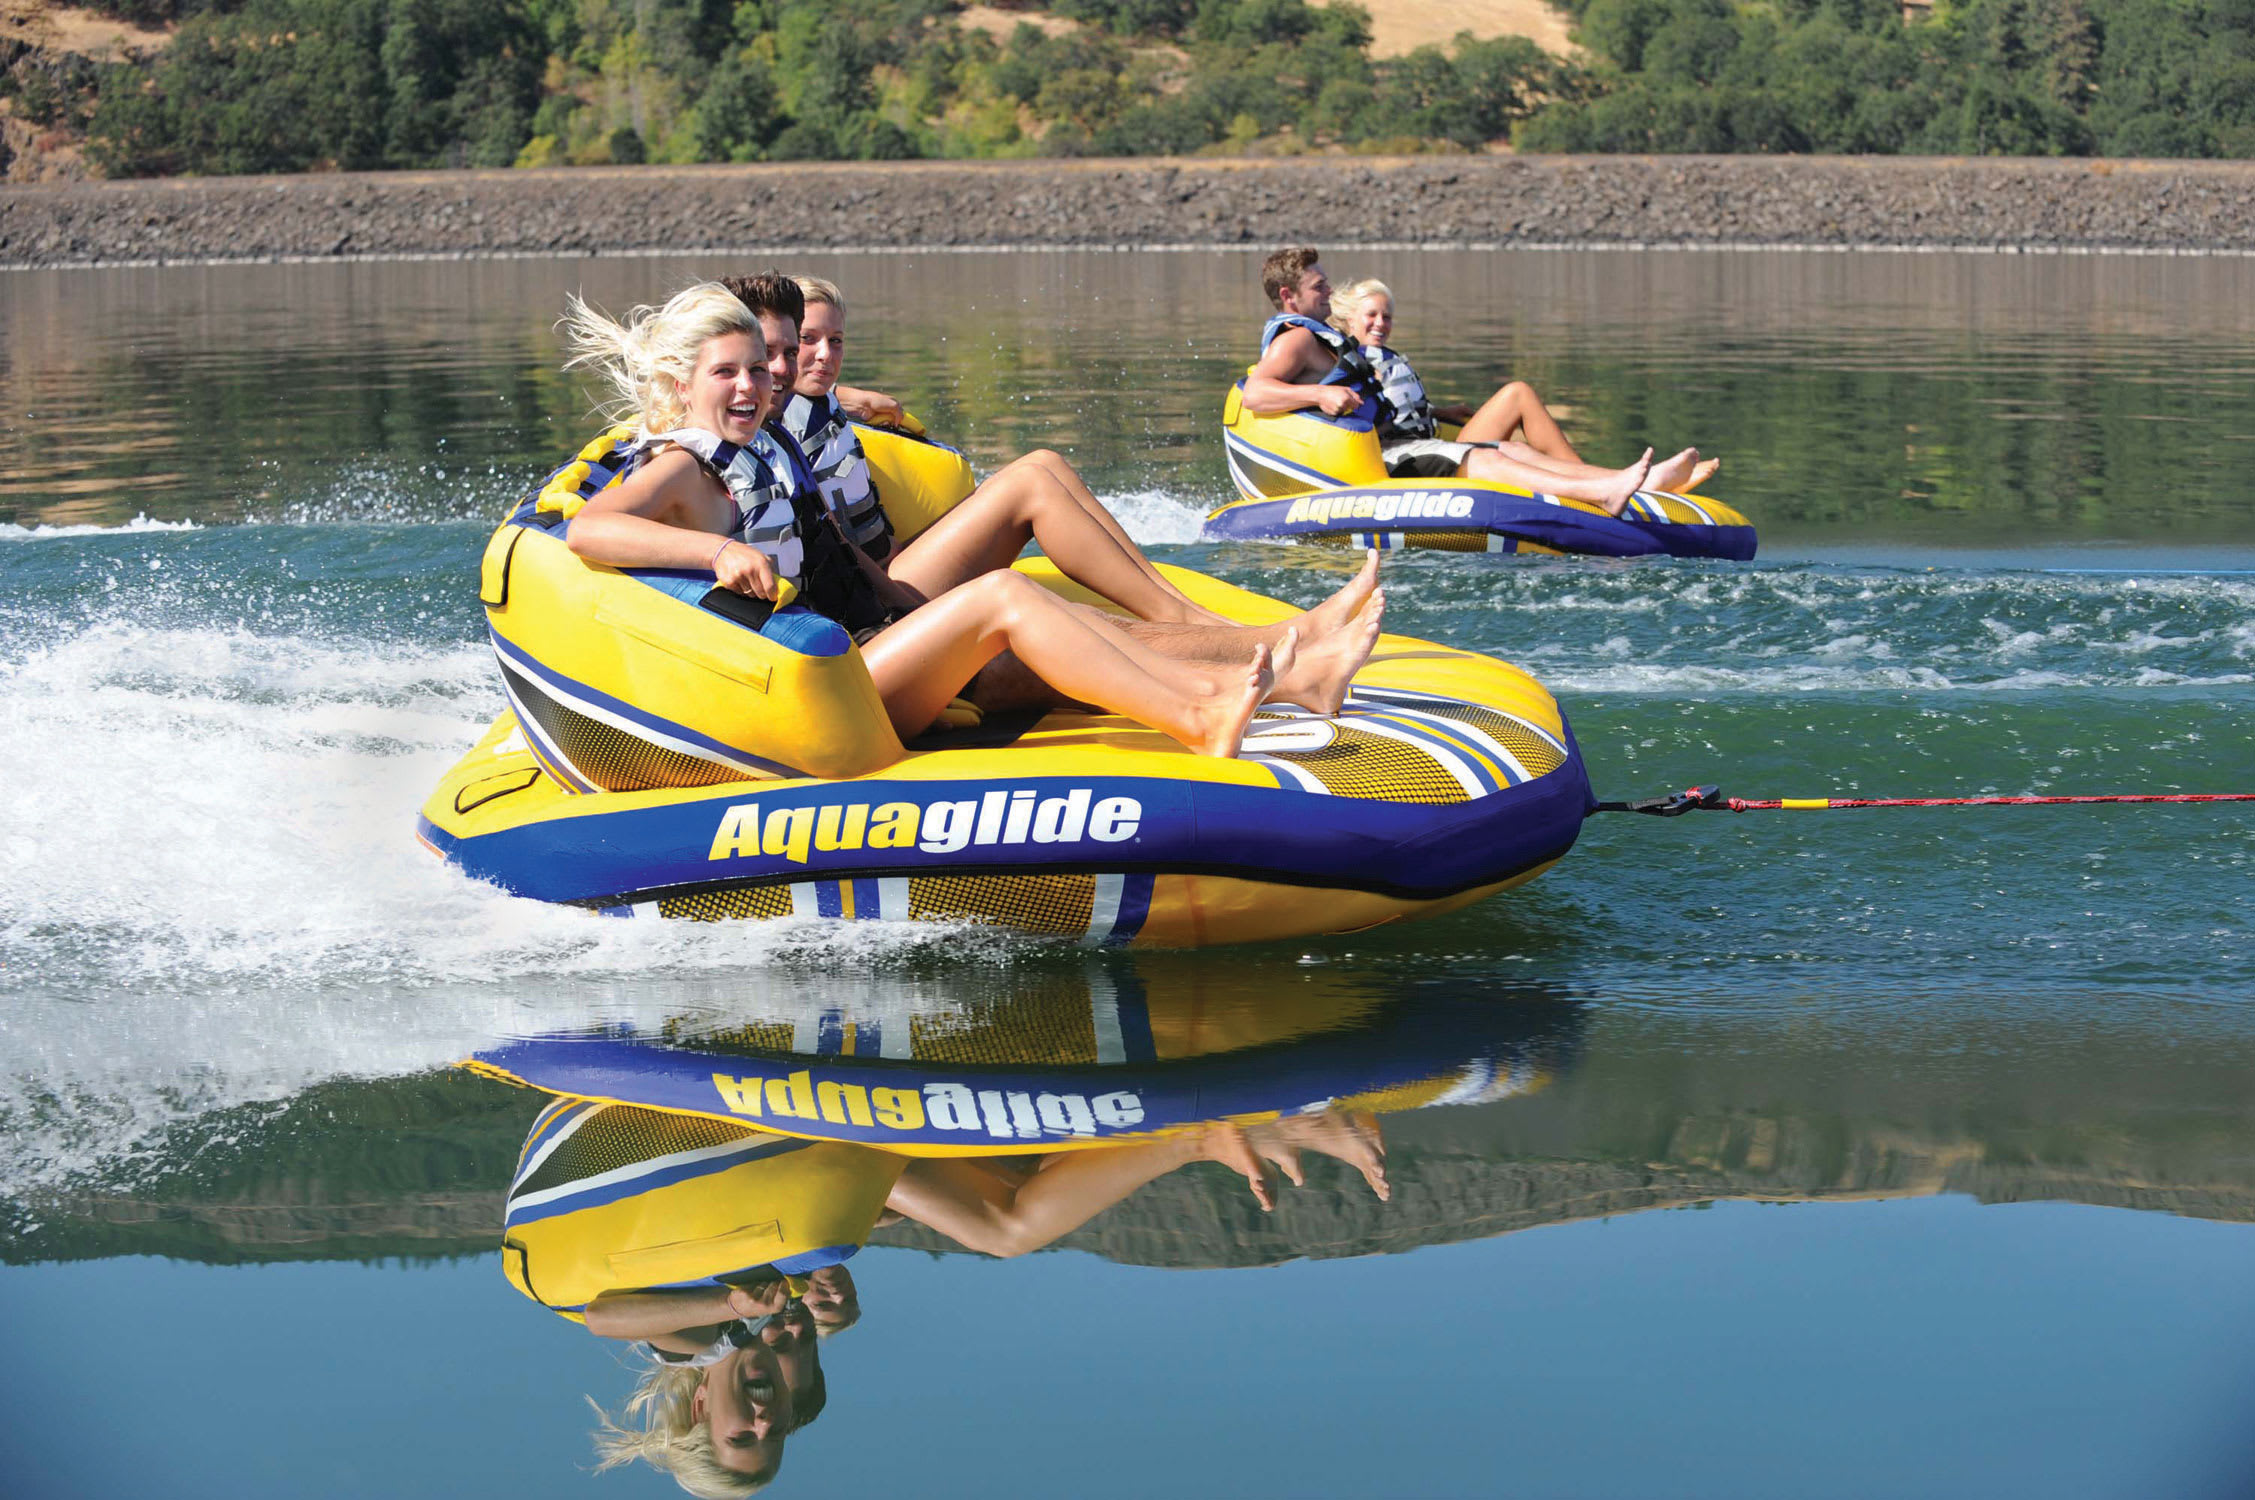 Aquaglide Retro 3 Inflatable Towable Tube Towing Harness Thumbnail 4